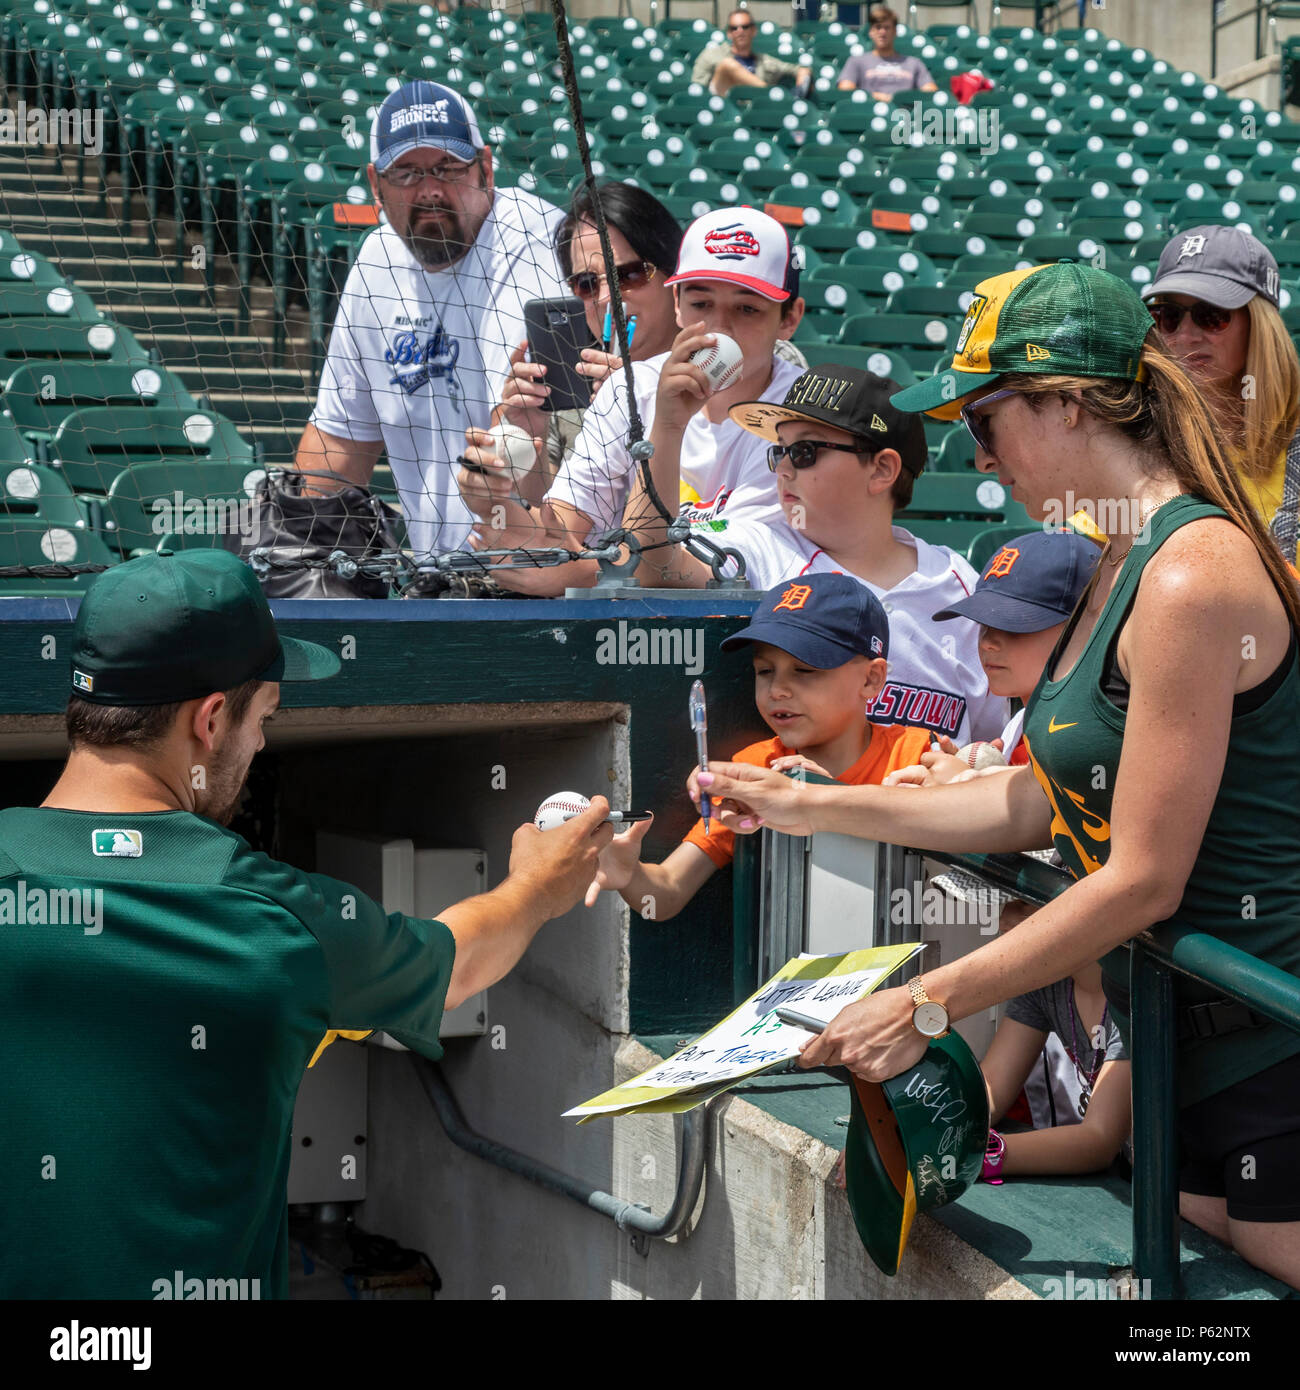 Detroit, Michigan - Chad Pinder, a utility player for the Oakland Athletics, signs autographs before a game against the Detroit Tigers at Comerica Par - Stock Image